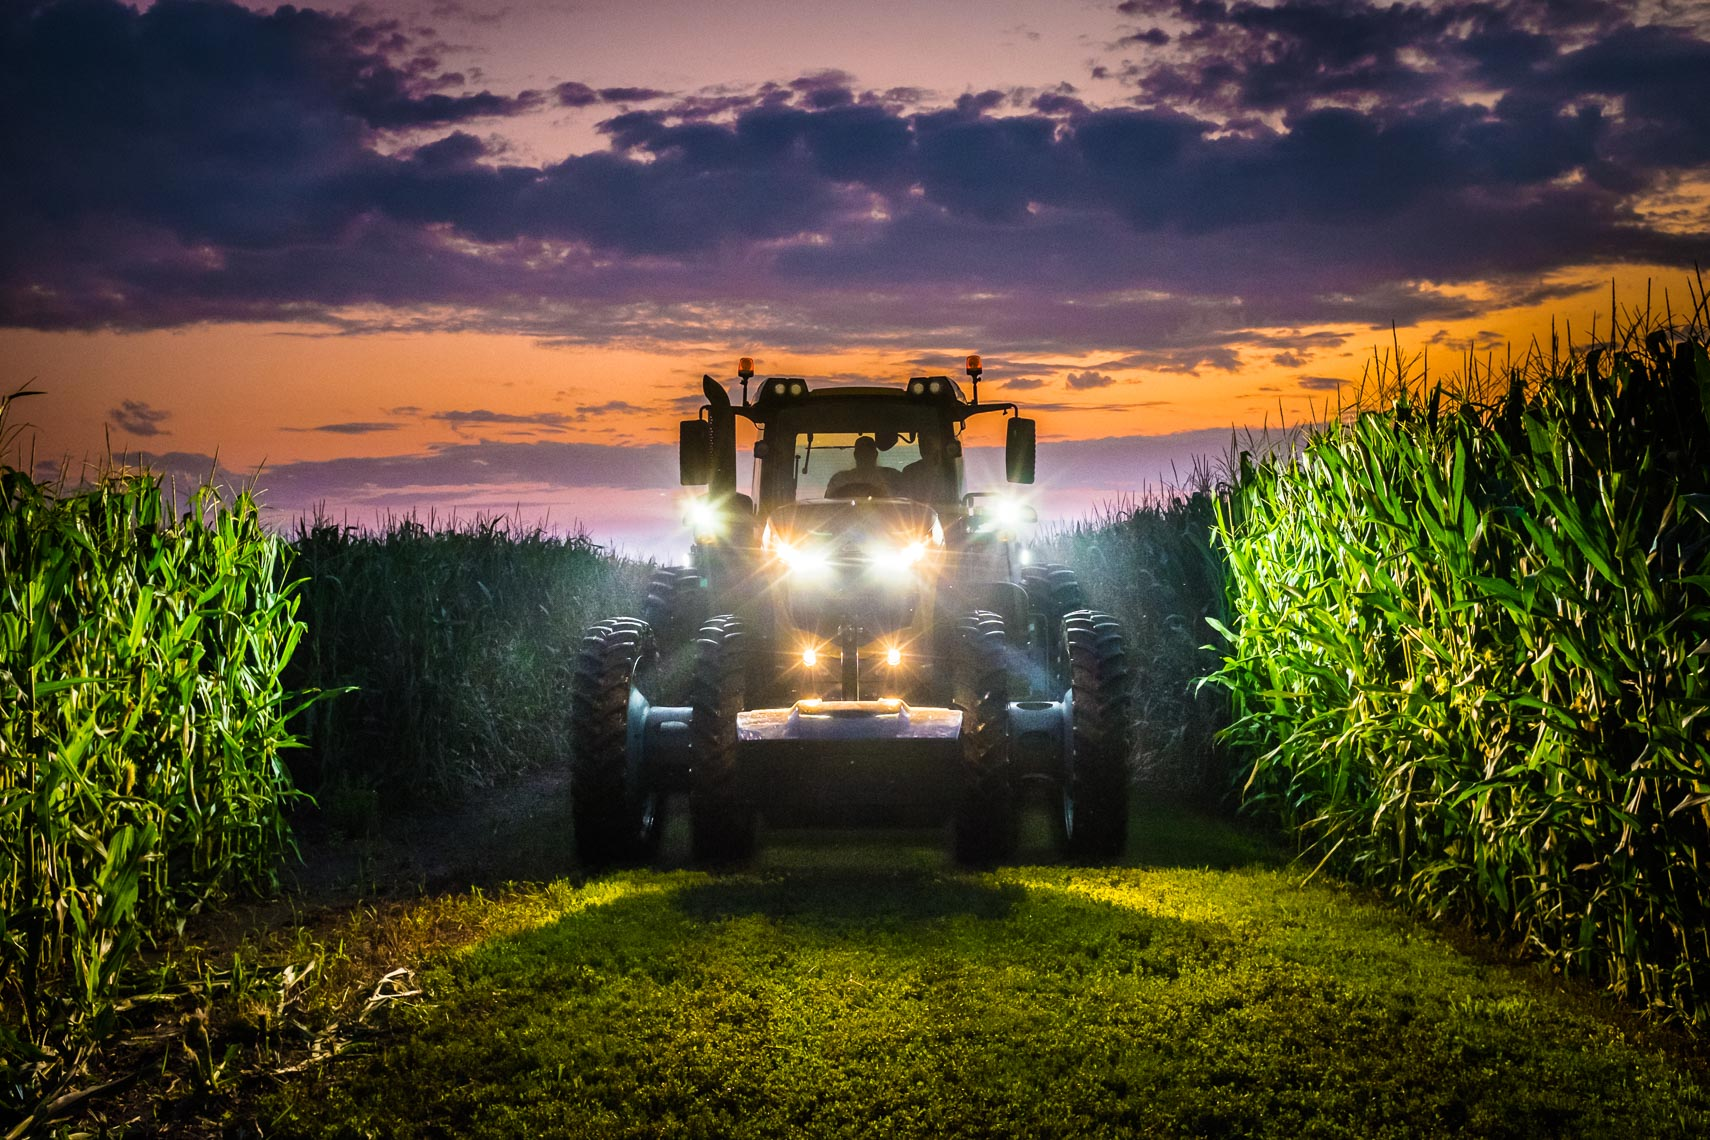 Sunset_Cornfield_Harvest